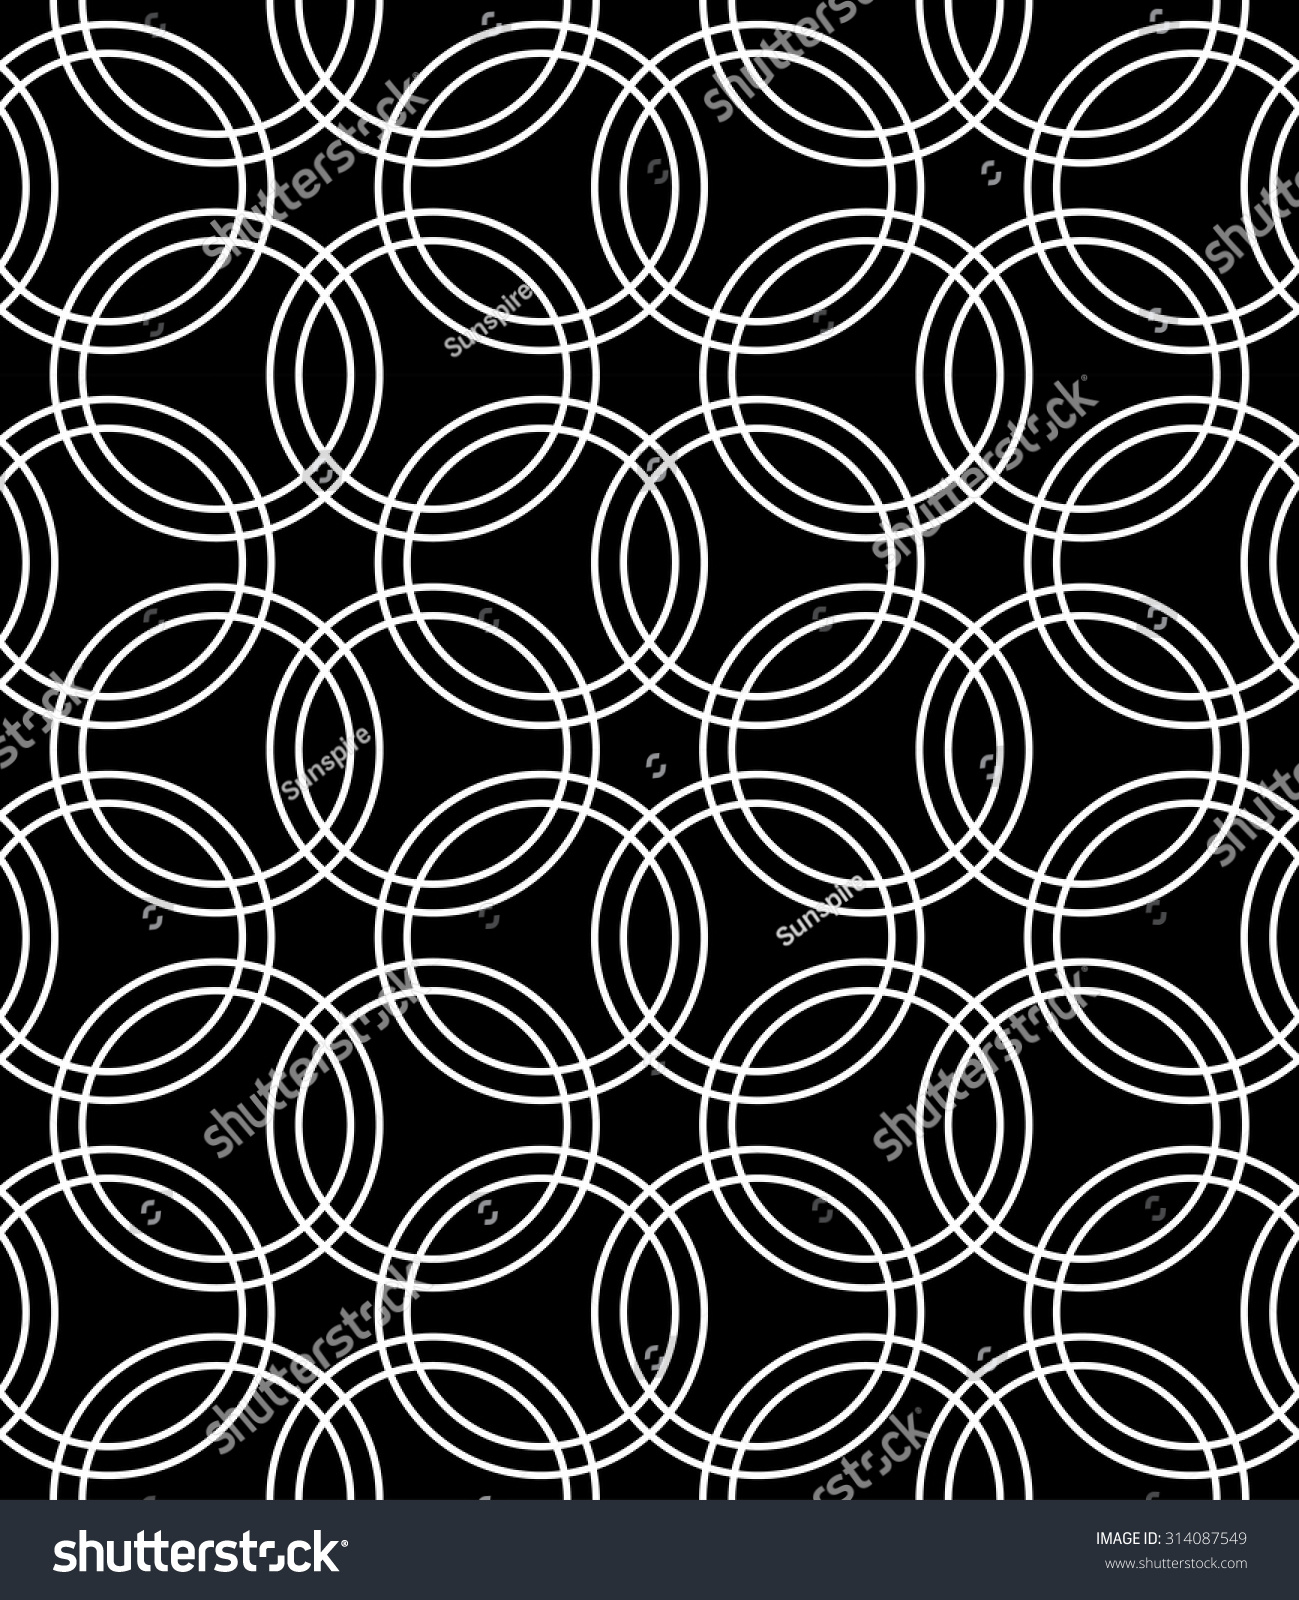 White bed sheet texture seamless - Vector Modern Seamless Pattern Flowers Black And White Textile Print Stylish Background Abstract